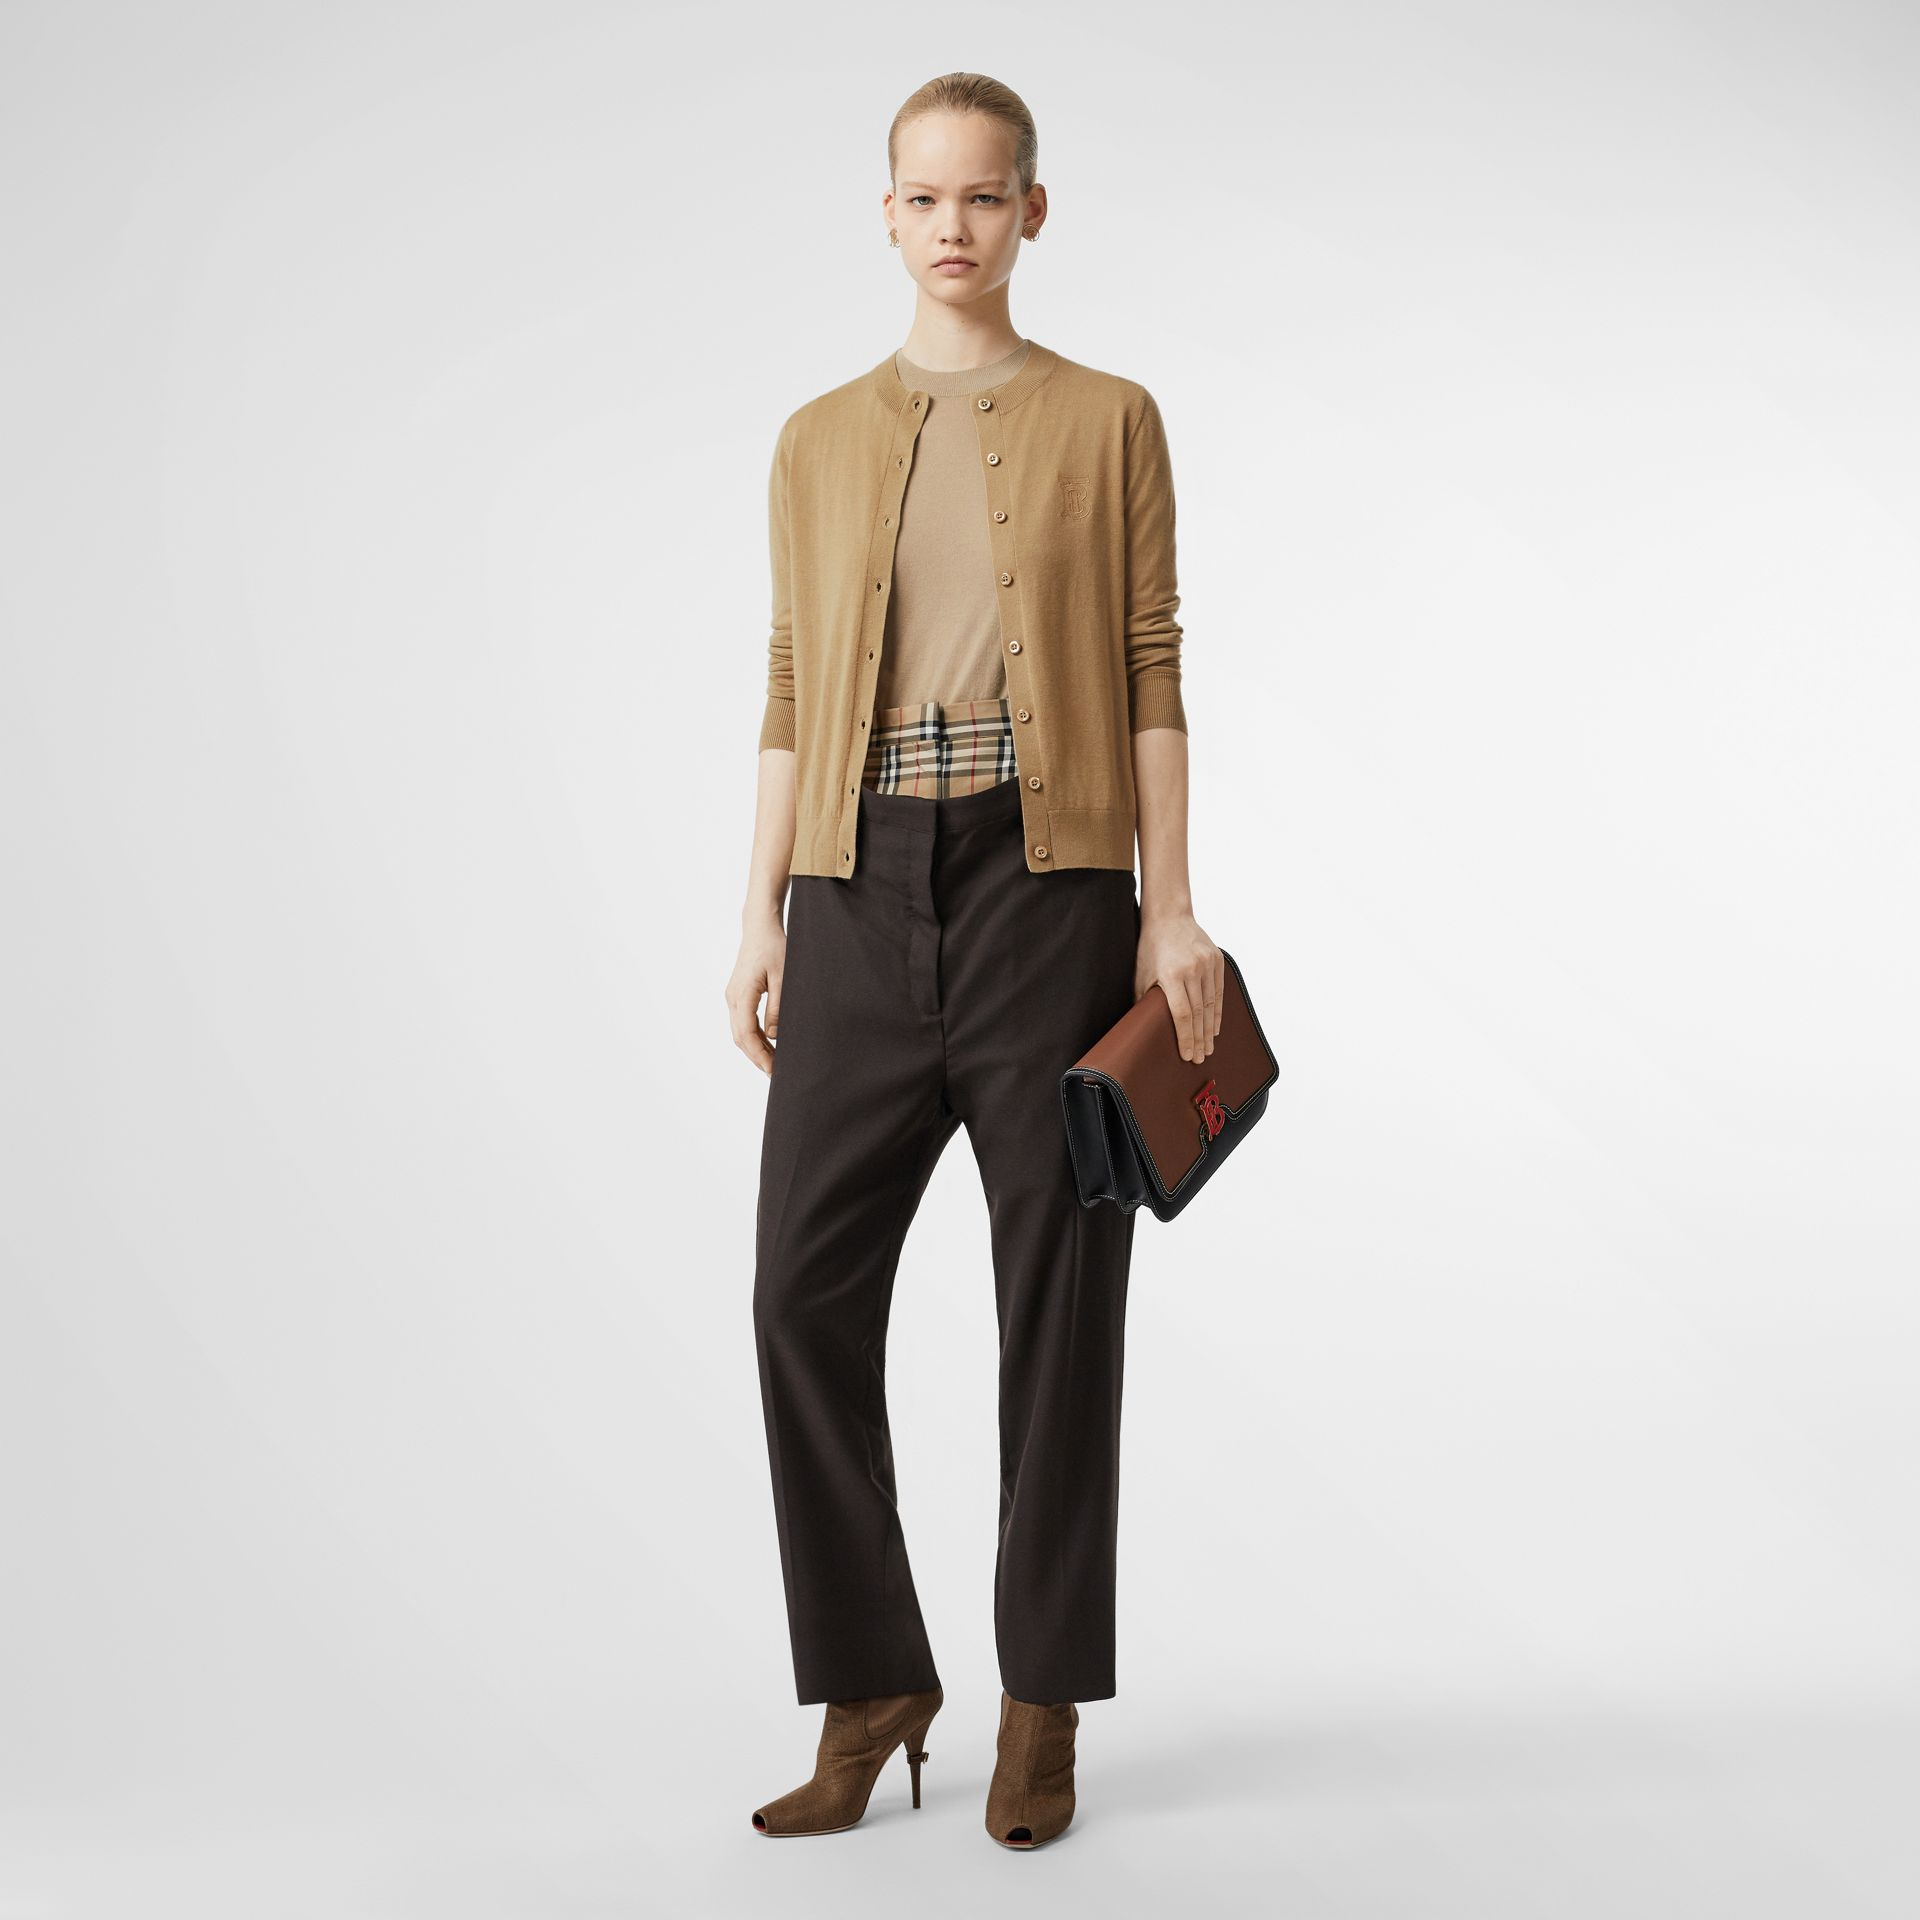 Monogram Motif Cashmere Cardigan in Camel - Women | Burberry United Kingdom - gallery image 0